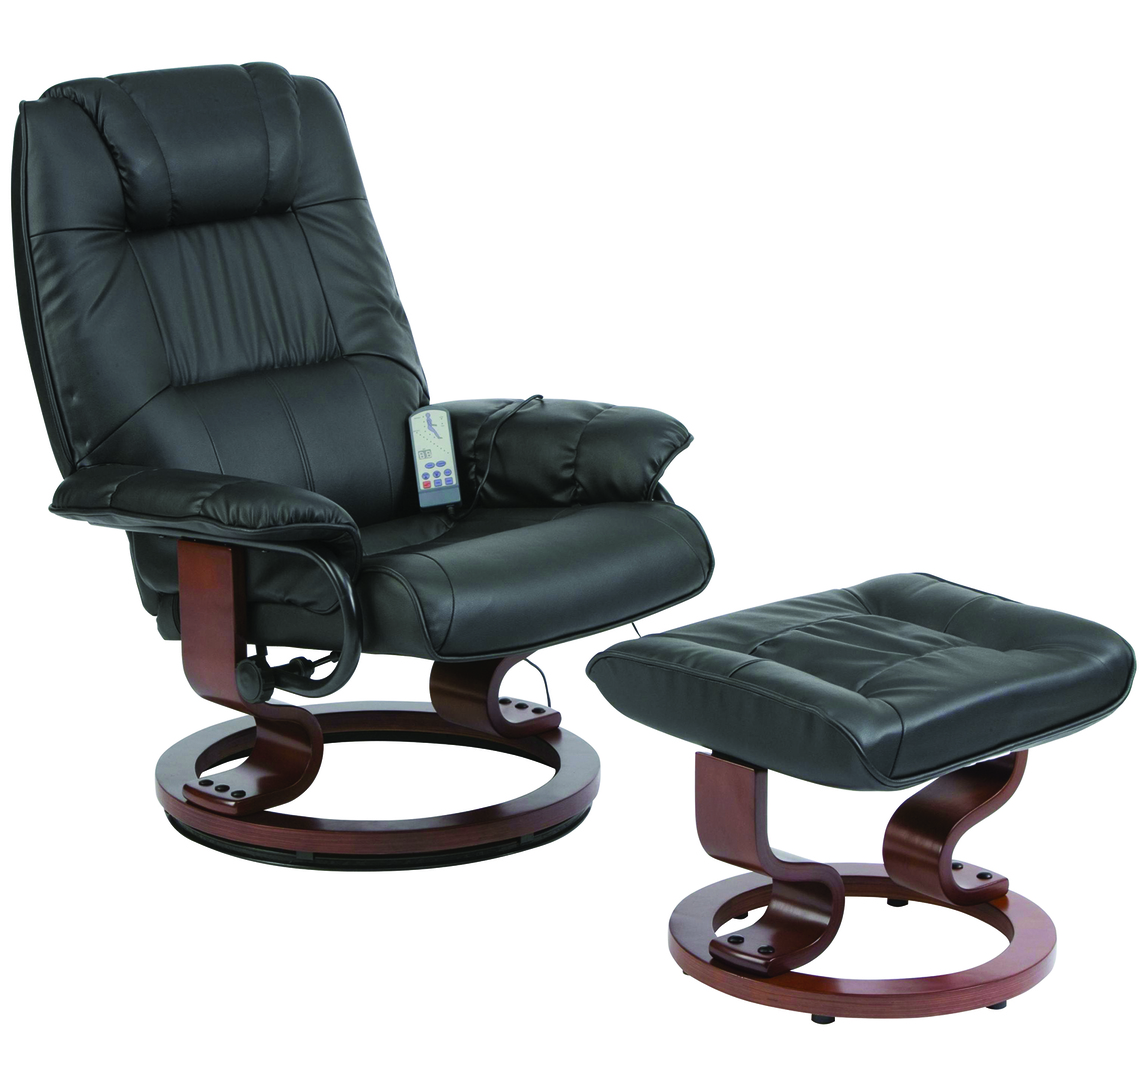 Furniture | Massage Chairs | napoli-massage-chair